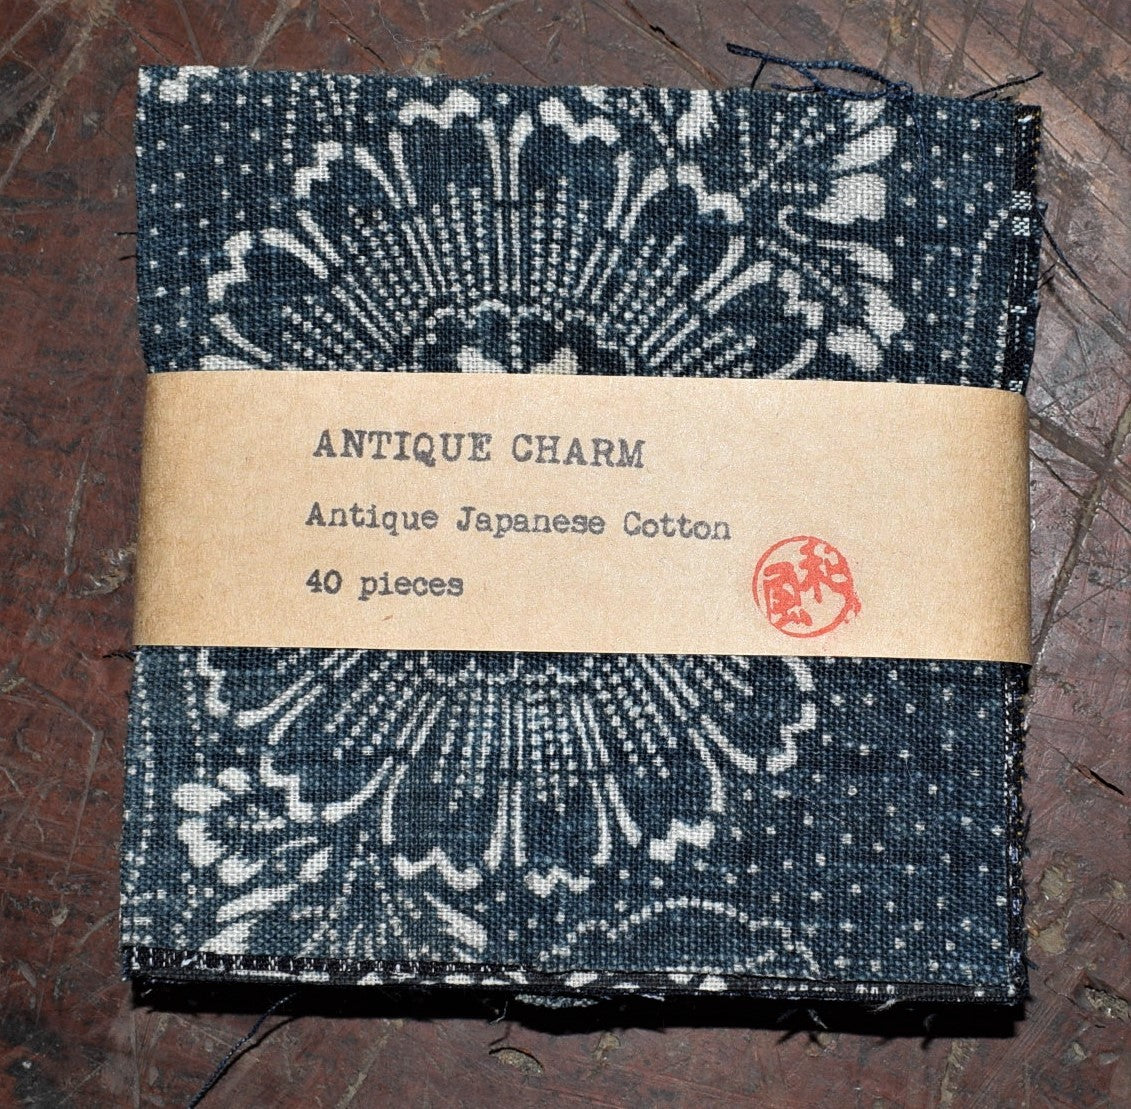 Antique Cotton Charm